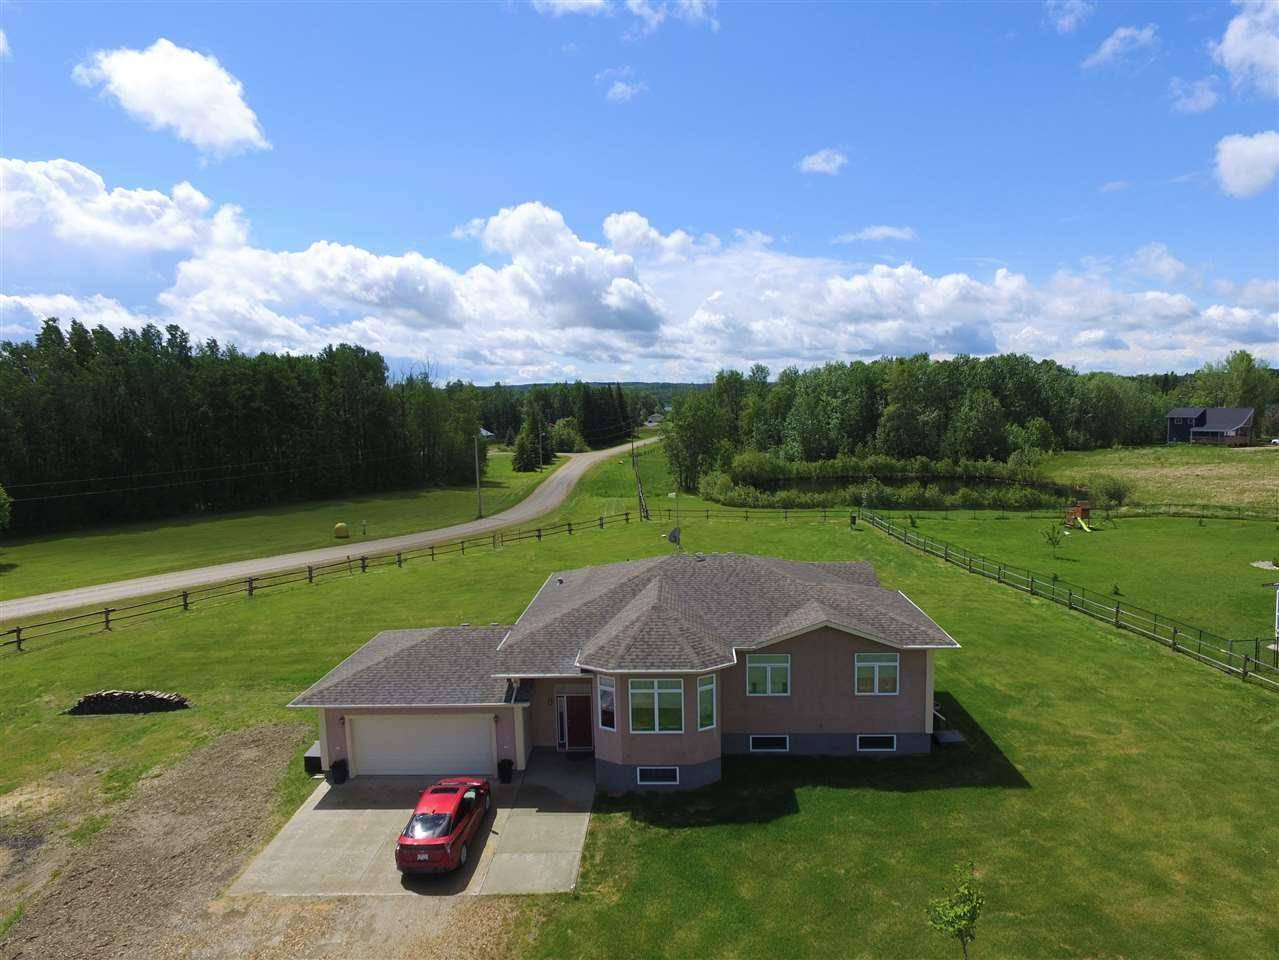 Buliding: 53414 Rge Road, Rural Lac Ste Anne County, AB